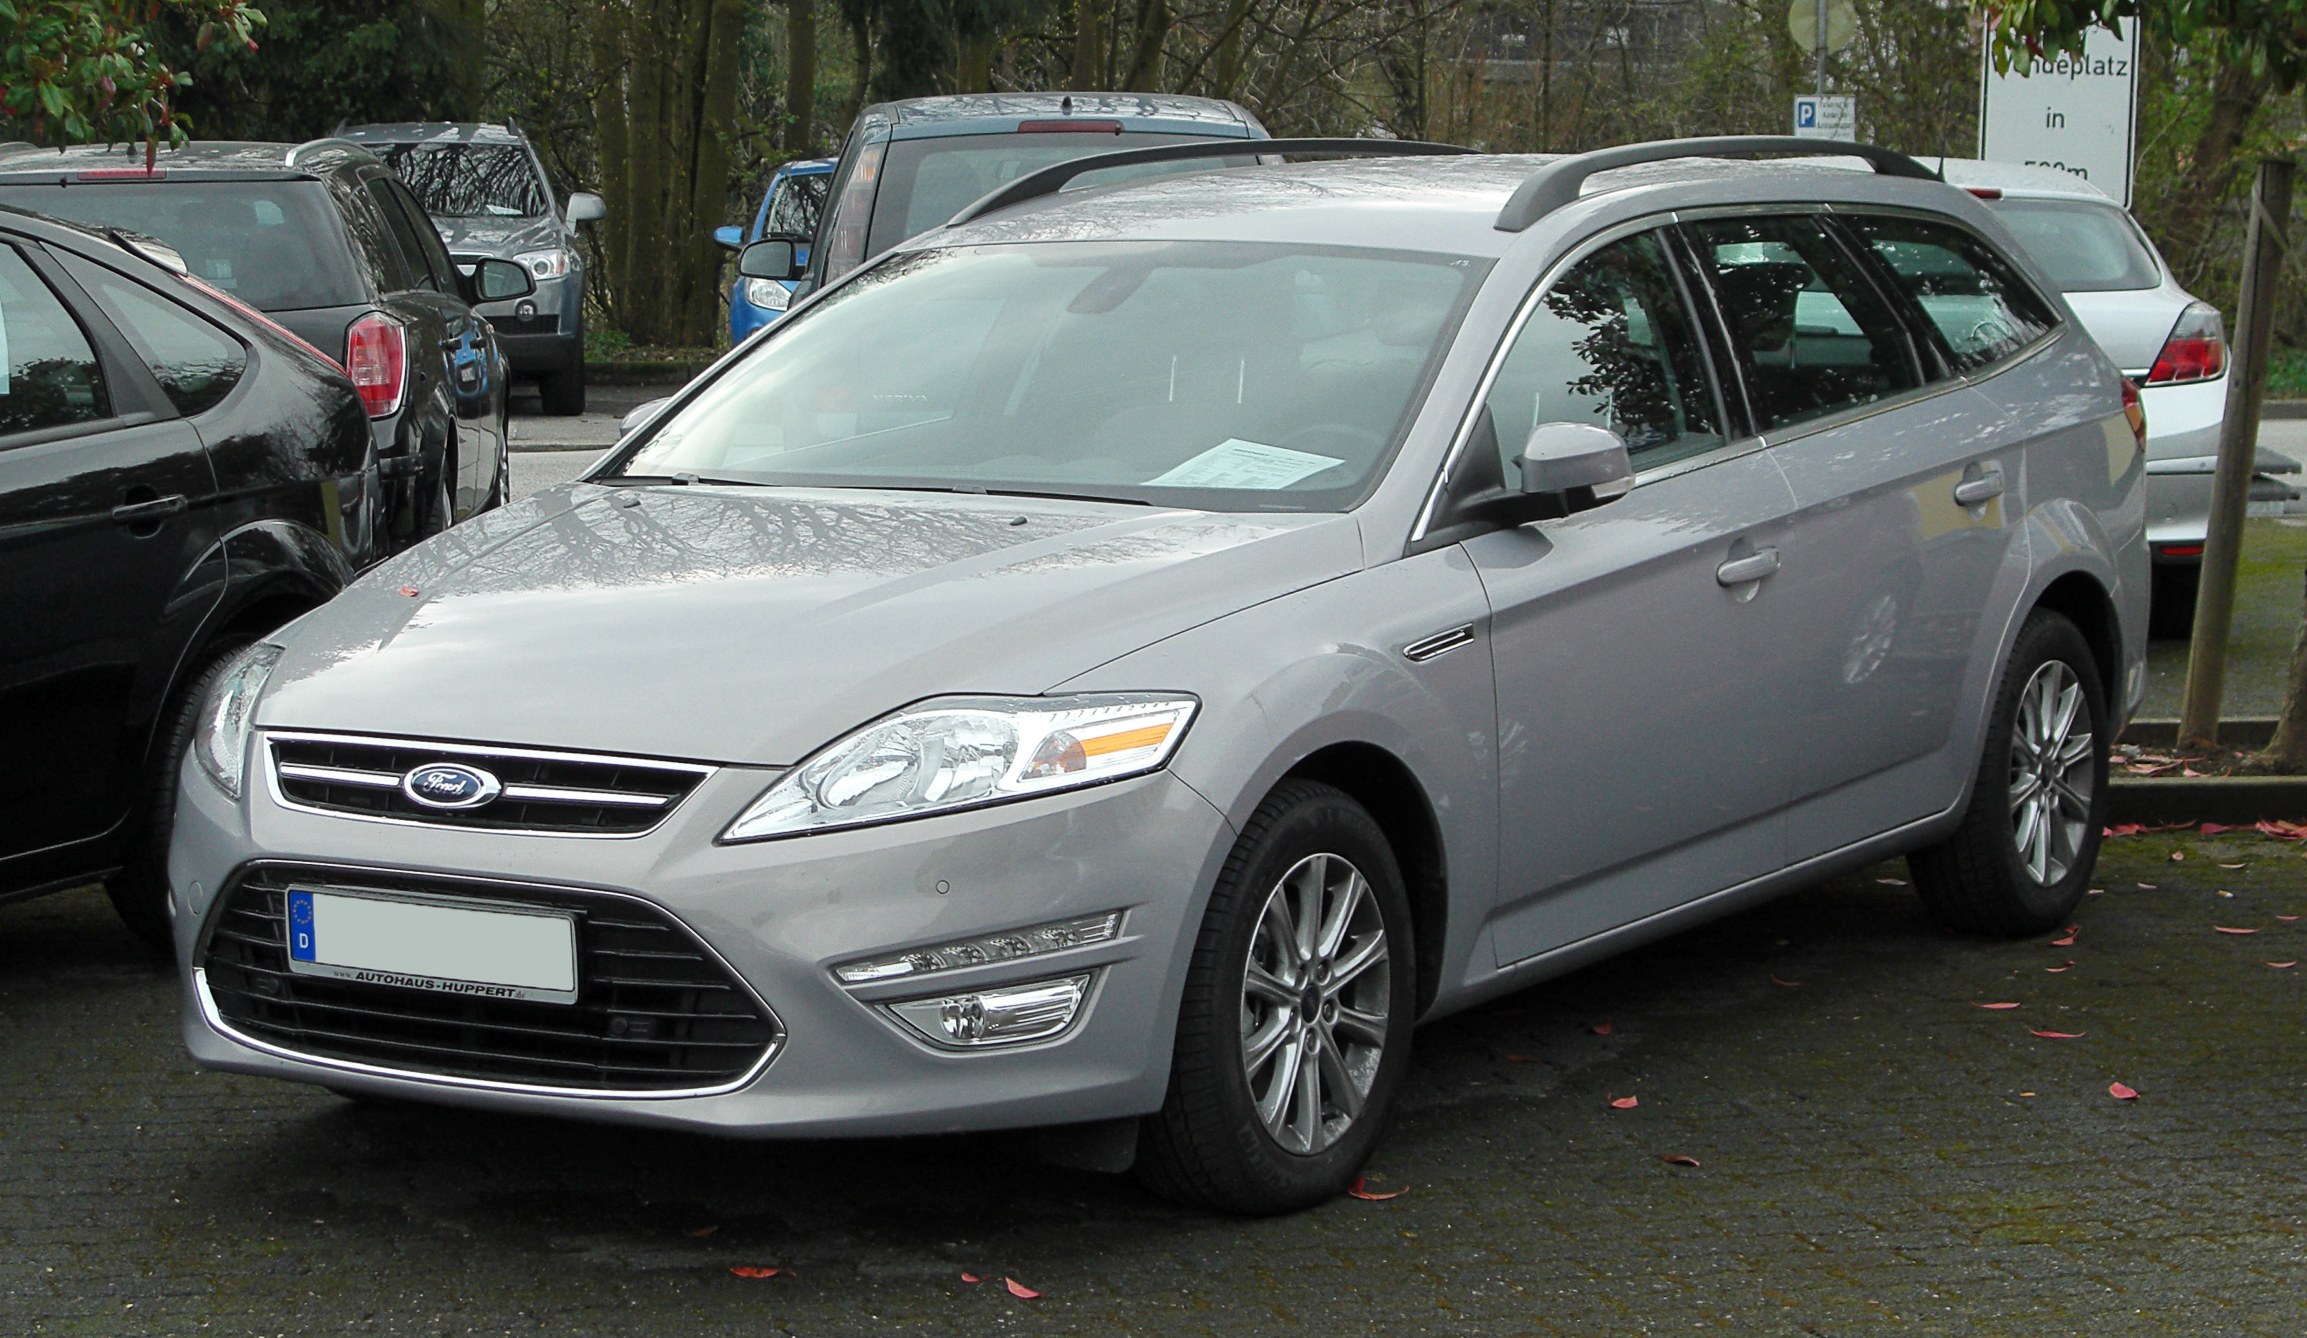 Ford Mondeo 2.0 2011 photo - 9